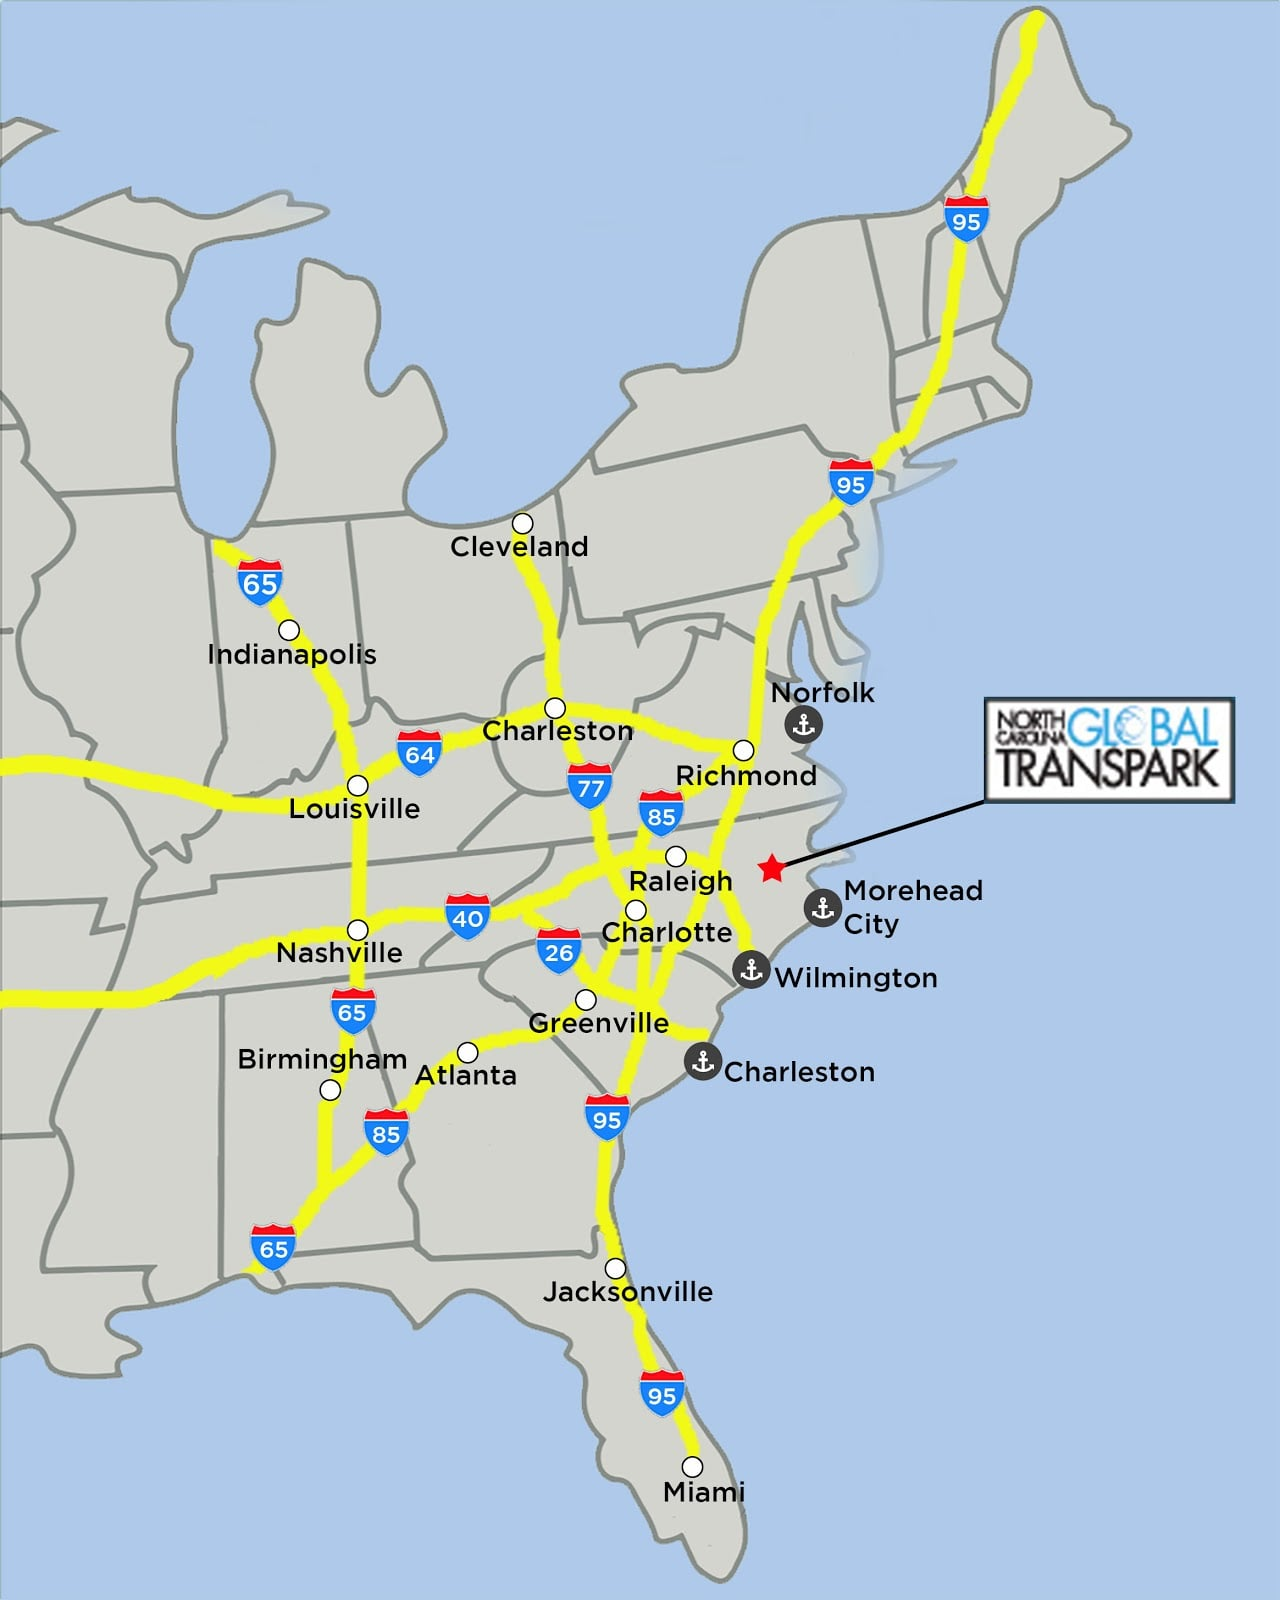 North Carolina Global TransPark: Maps